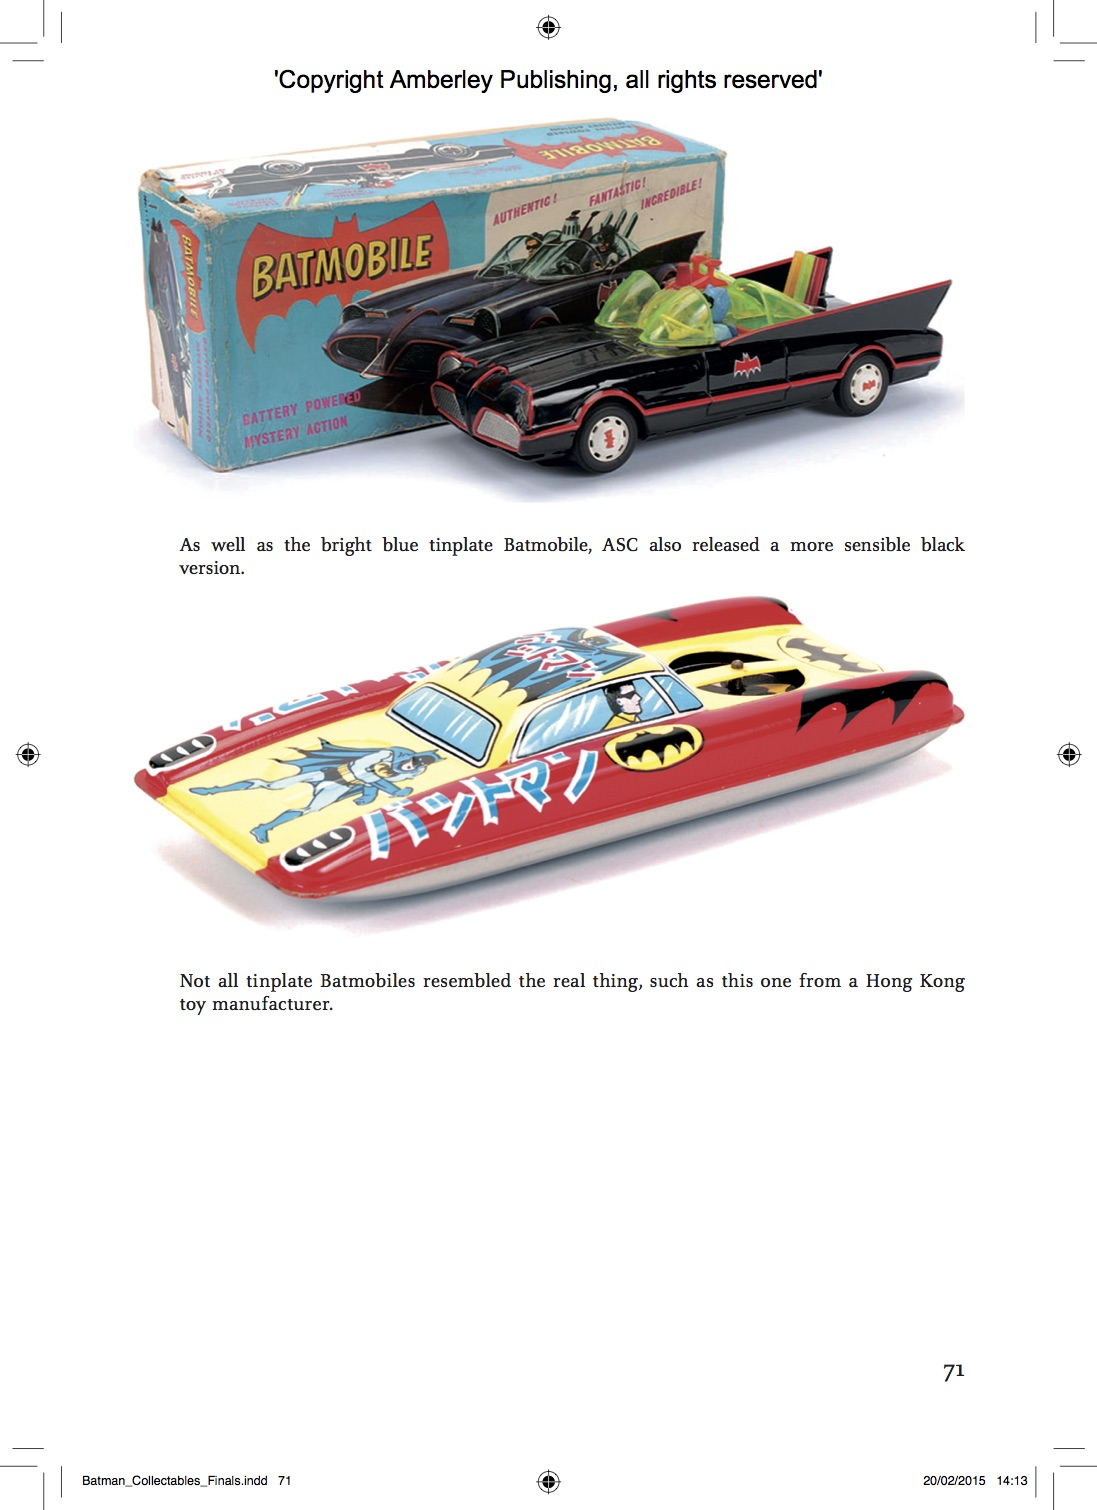 Batman Collectibles Merged File [TXT]-4